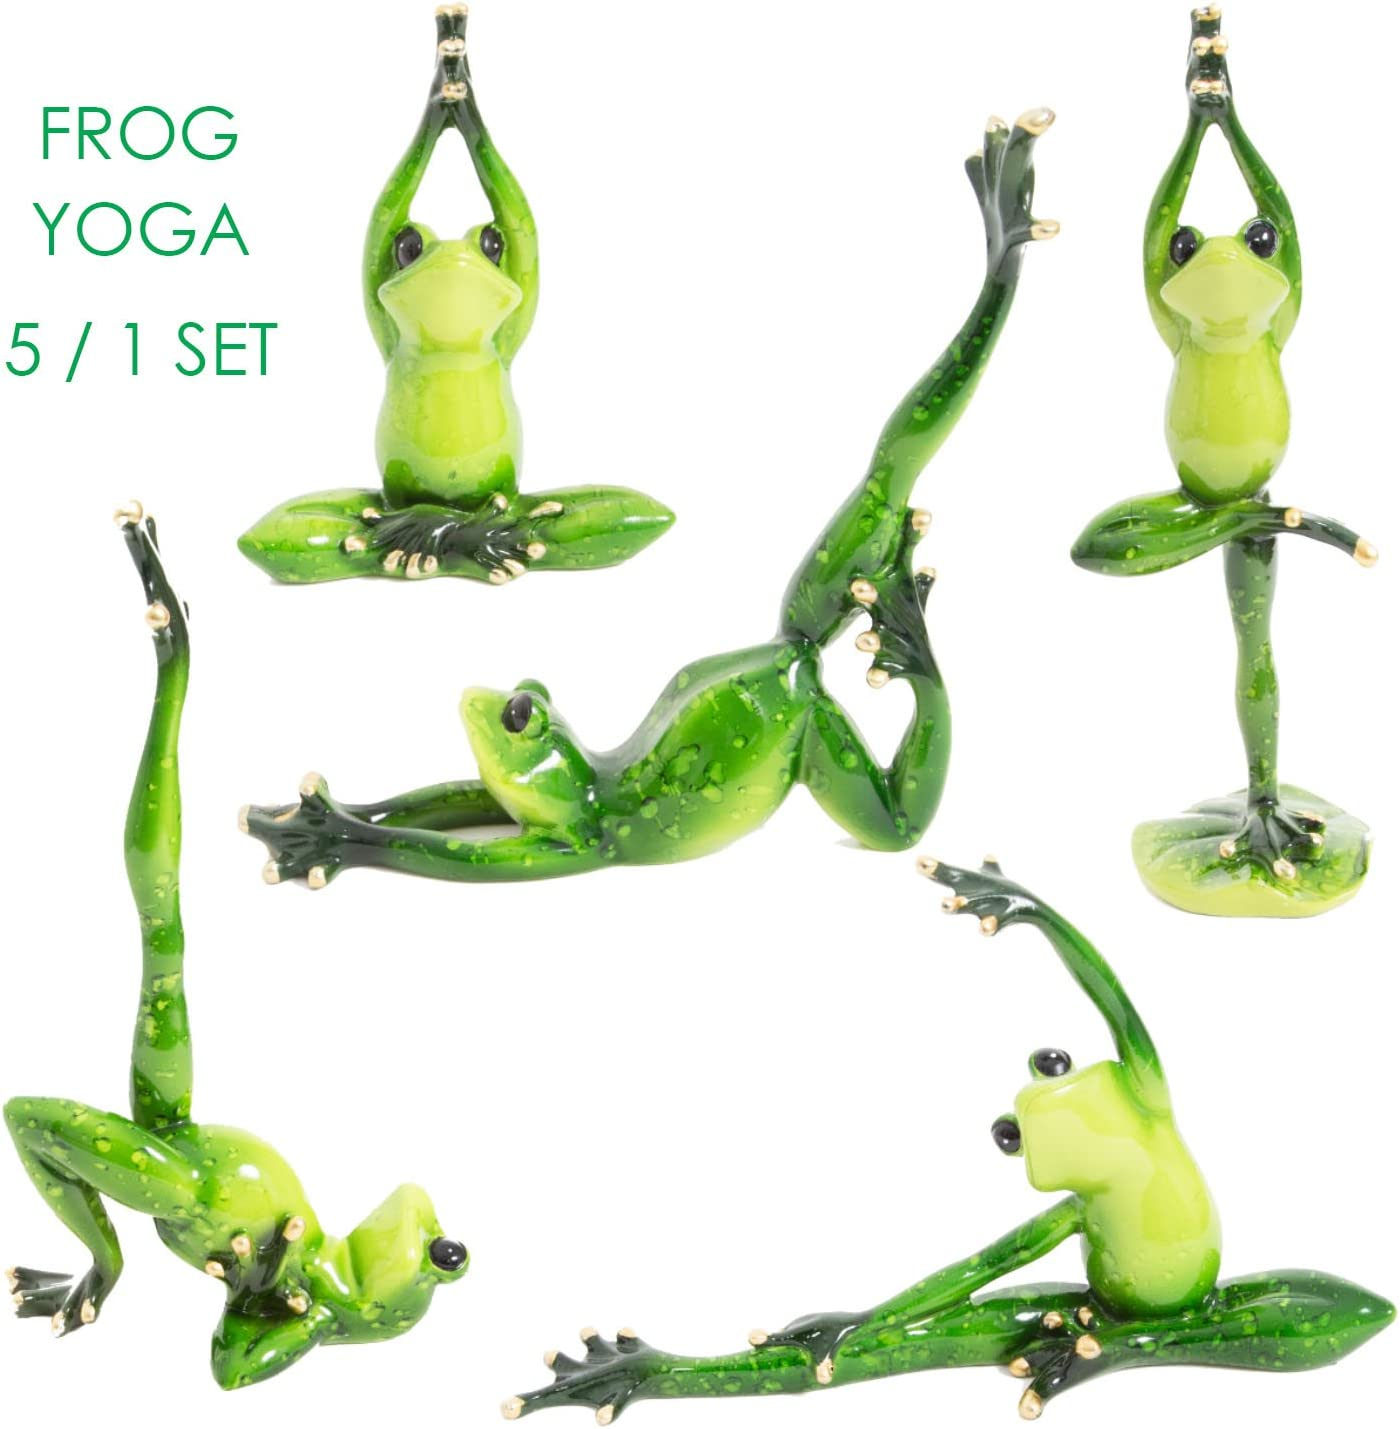 WitnyStore Yoga Frog Team Figurines - Collectible Animal Art - Set of 5 Stucco Ceramic Miniature Hand Made and Painted Vintage Table Decor Perfect for Gifts and Souvenirs